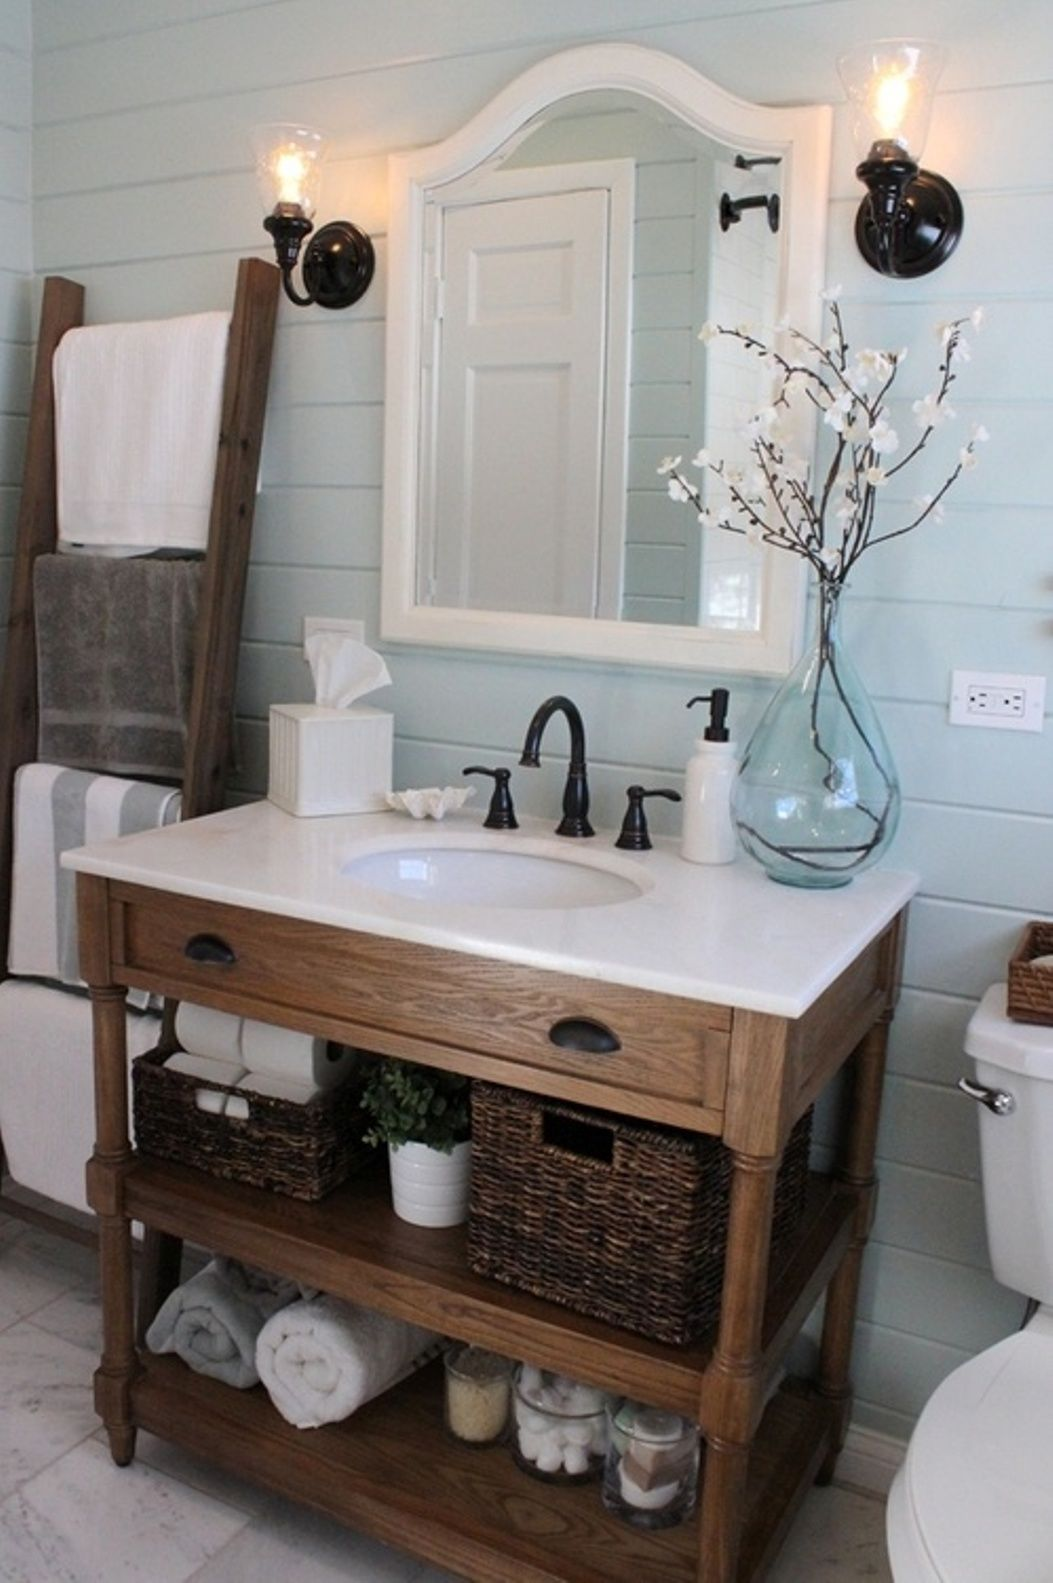 17 inspiring rustic bathroom decor ideas for cozy home for Bathroom vanities design ideas